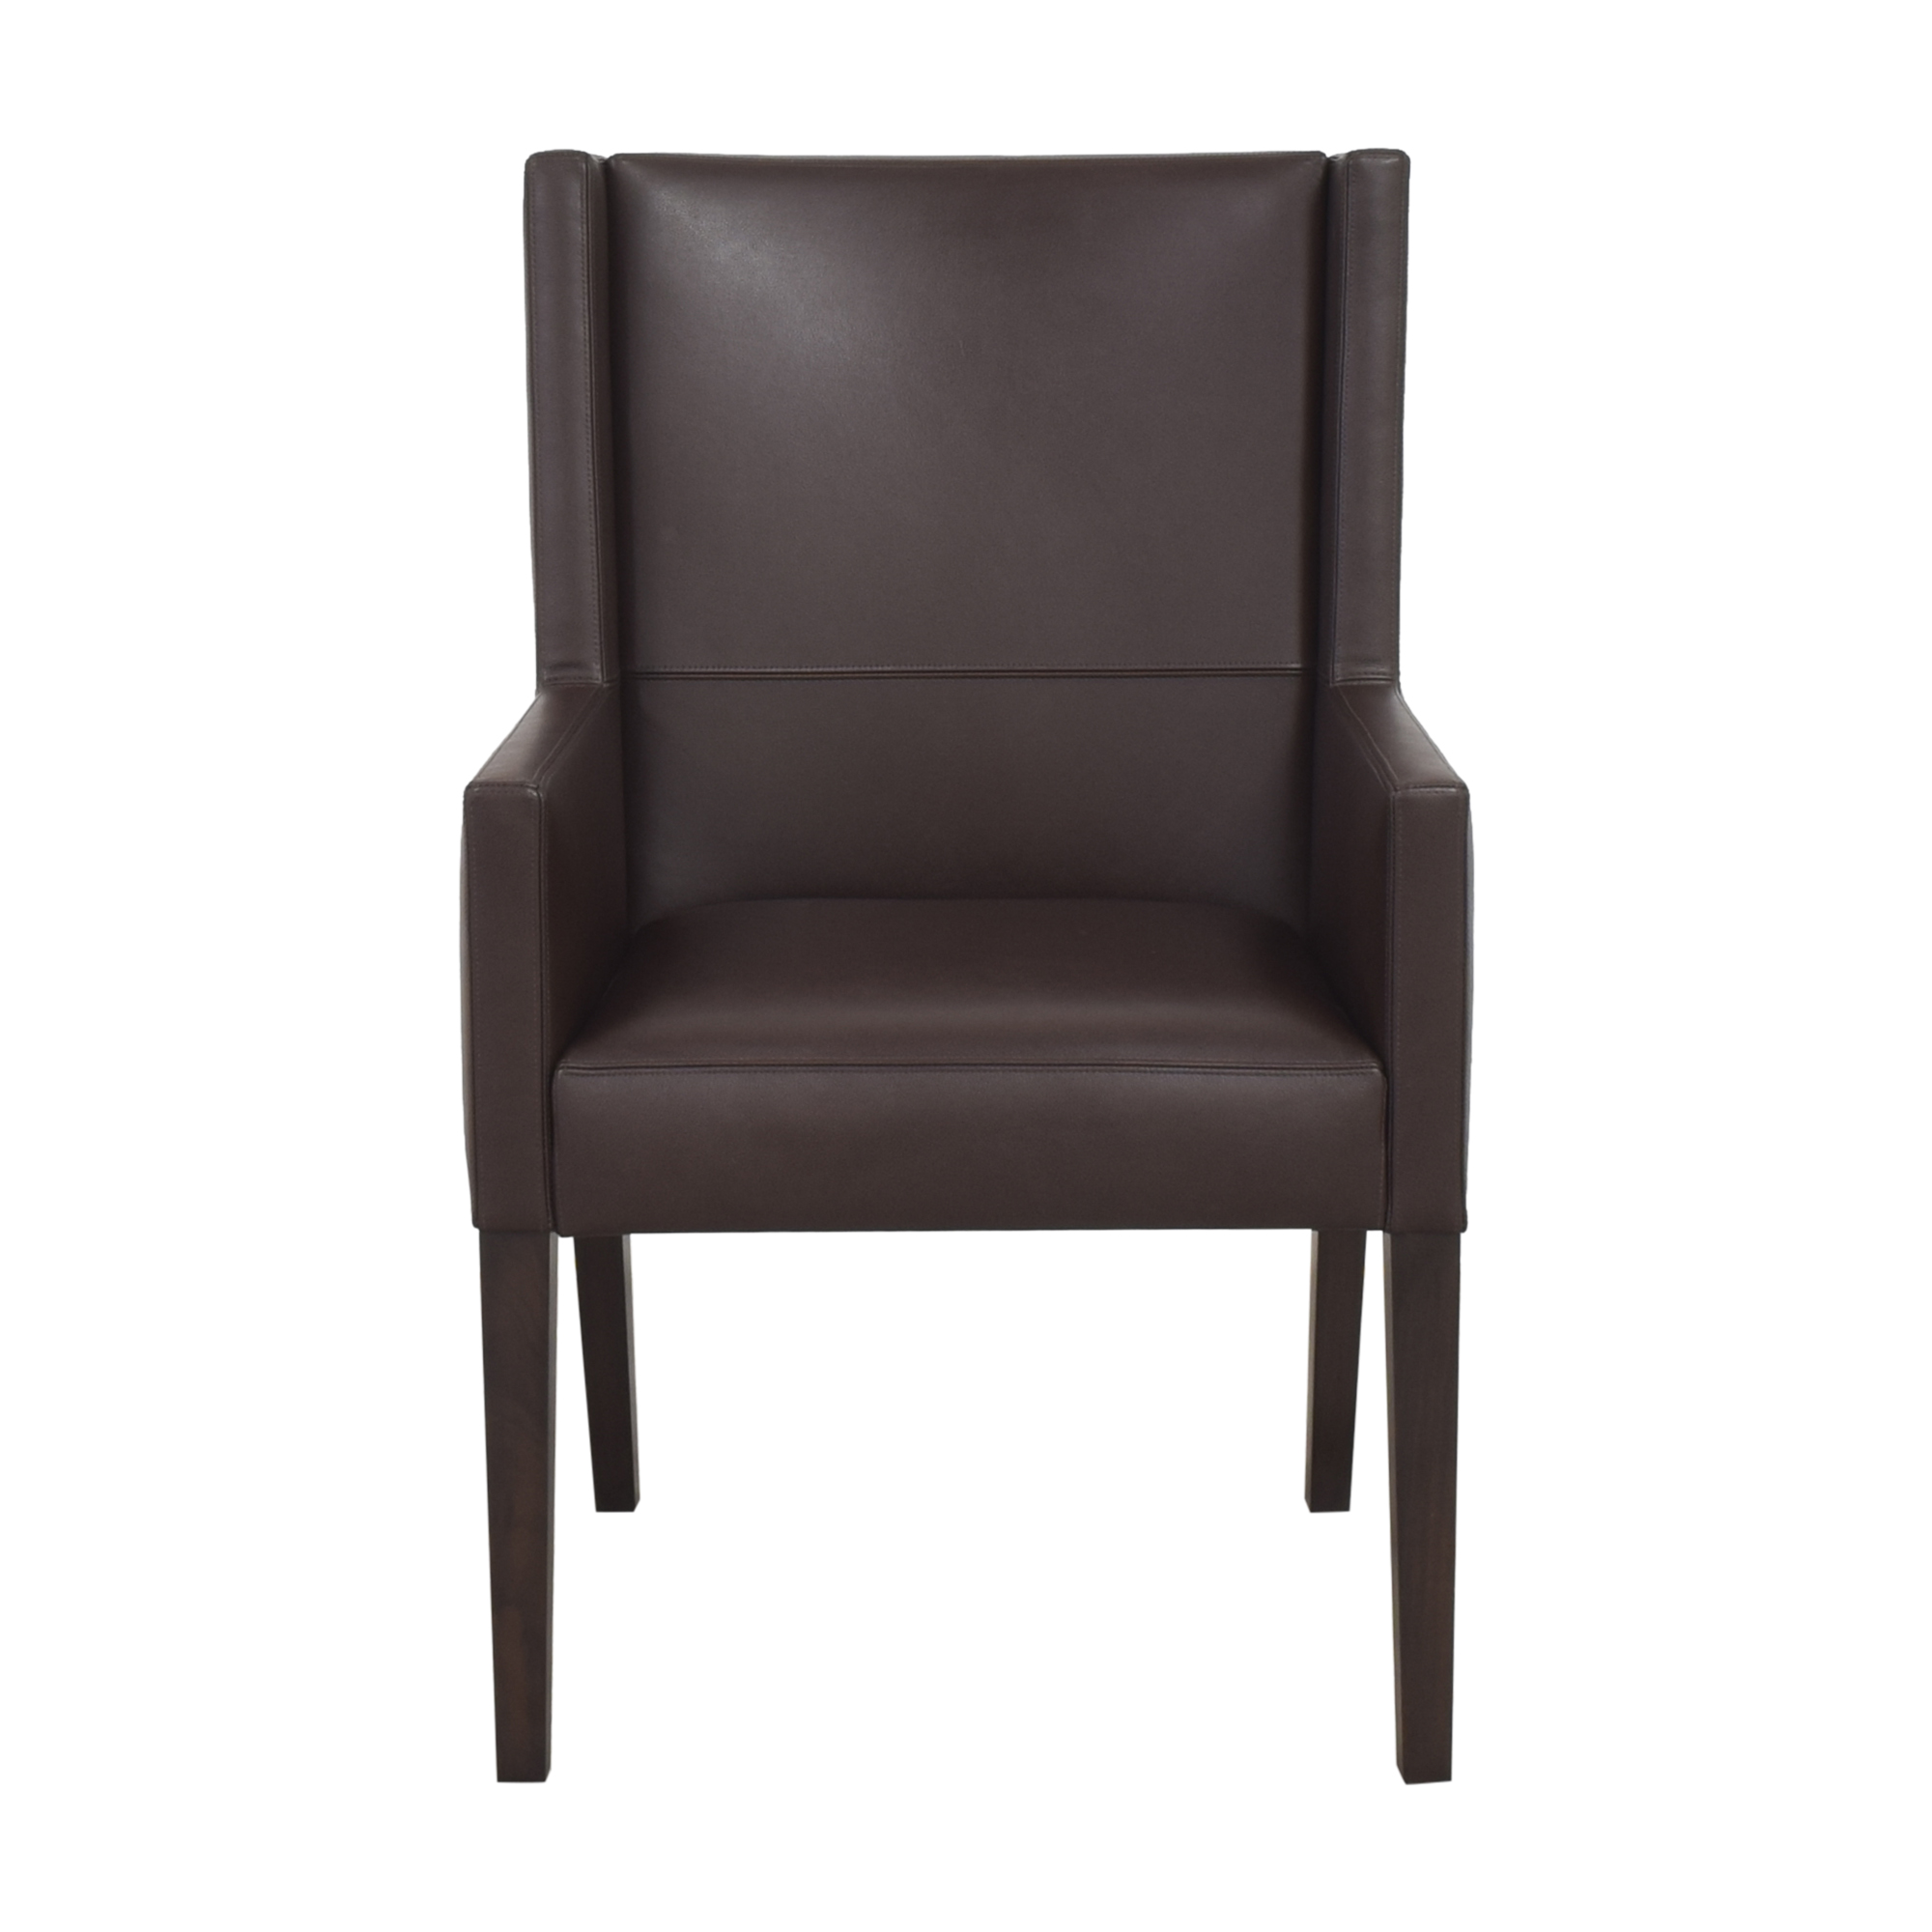 buy Holly Hunt Holly Hunt Dempsey Arm Chair by Joseph Juep online